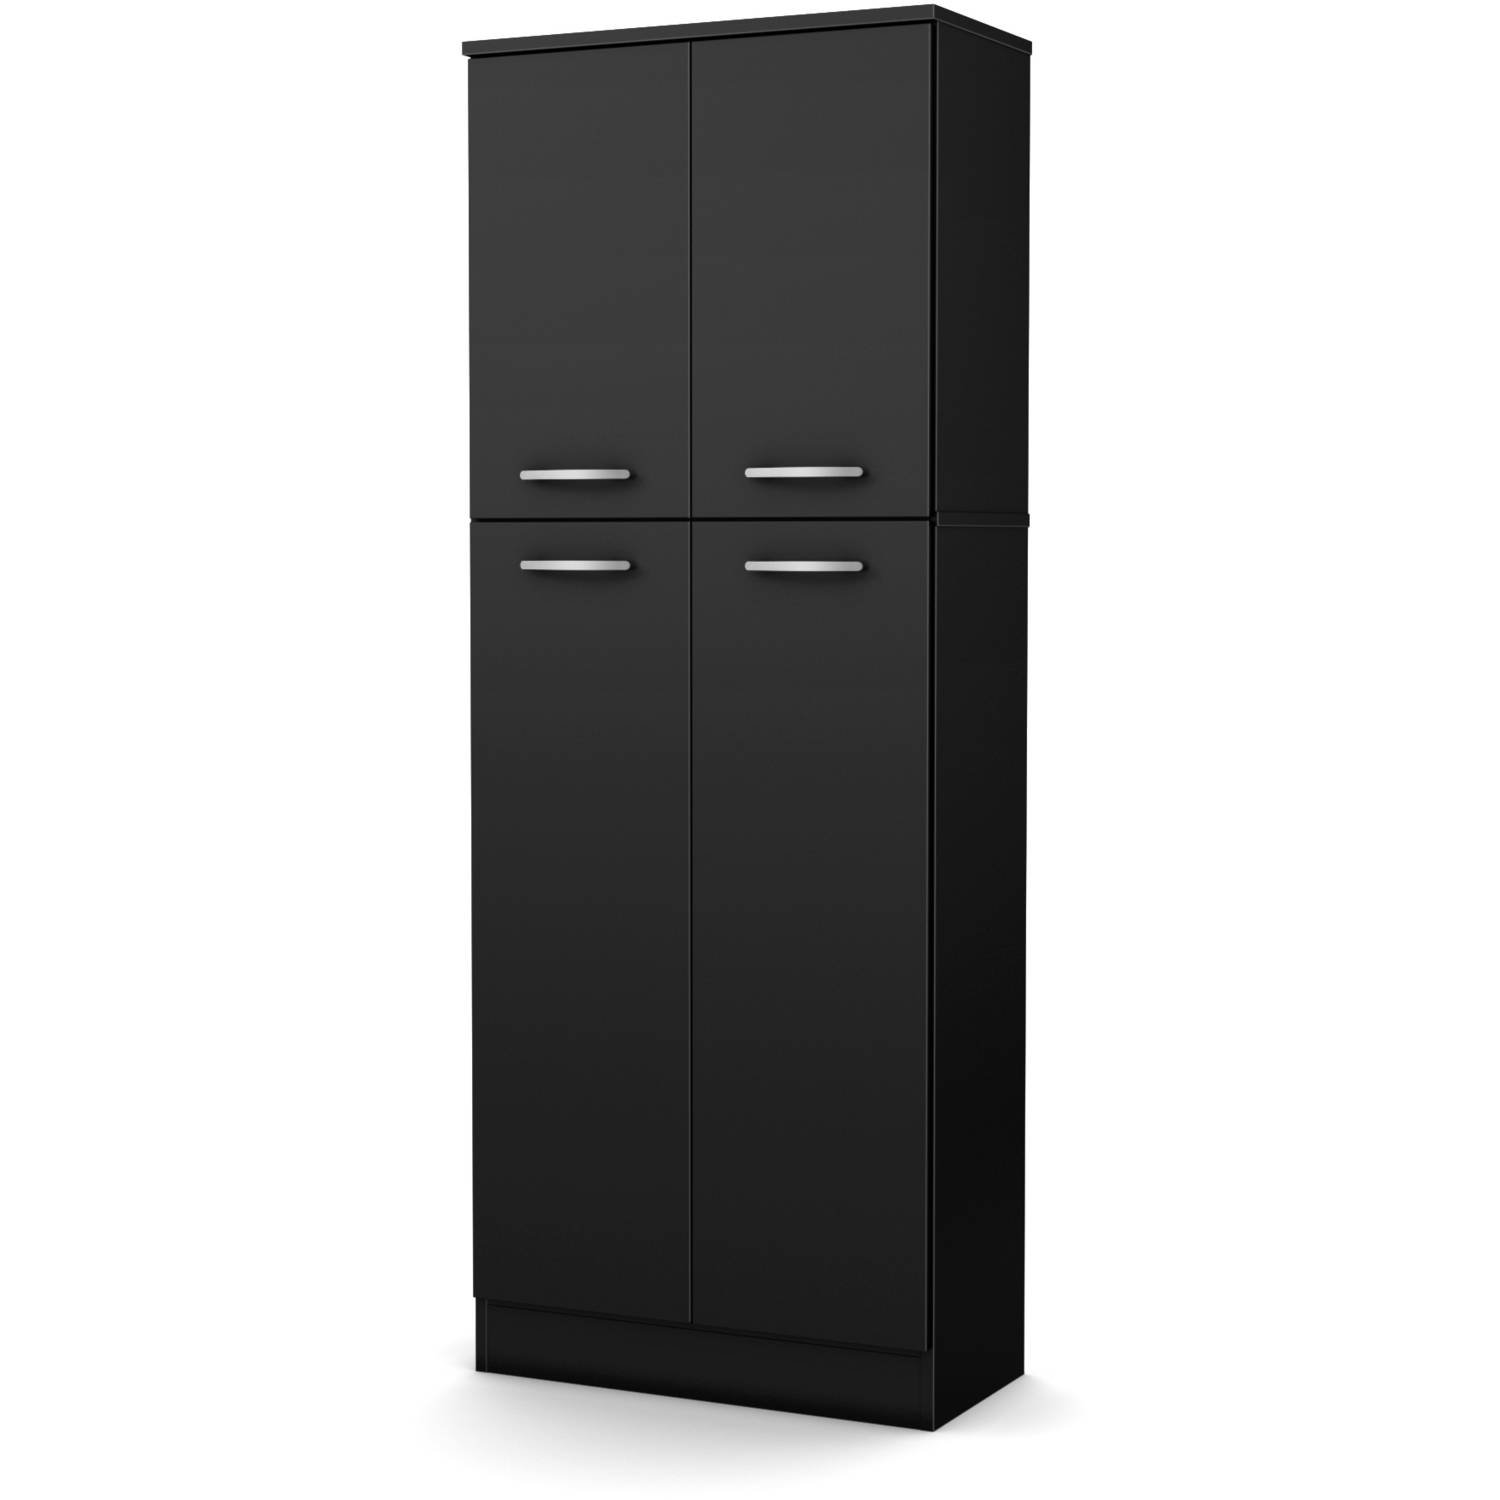 Elegant Tall 4-Door Storage Pantry with 3 Adjustable Shelves in 2 Separated Storage Spaces, Made from Non-Toxic Laminated Particleboard, Black + Expert Home Guide by Love US